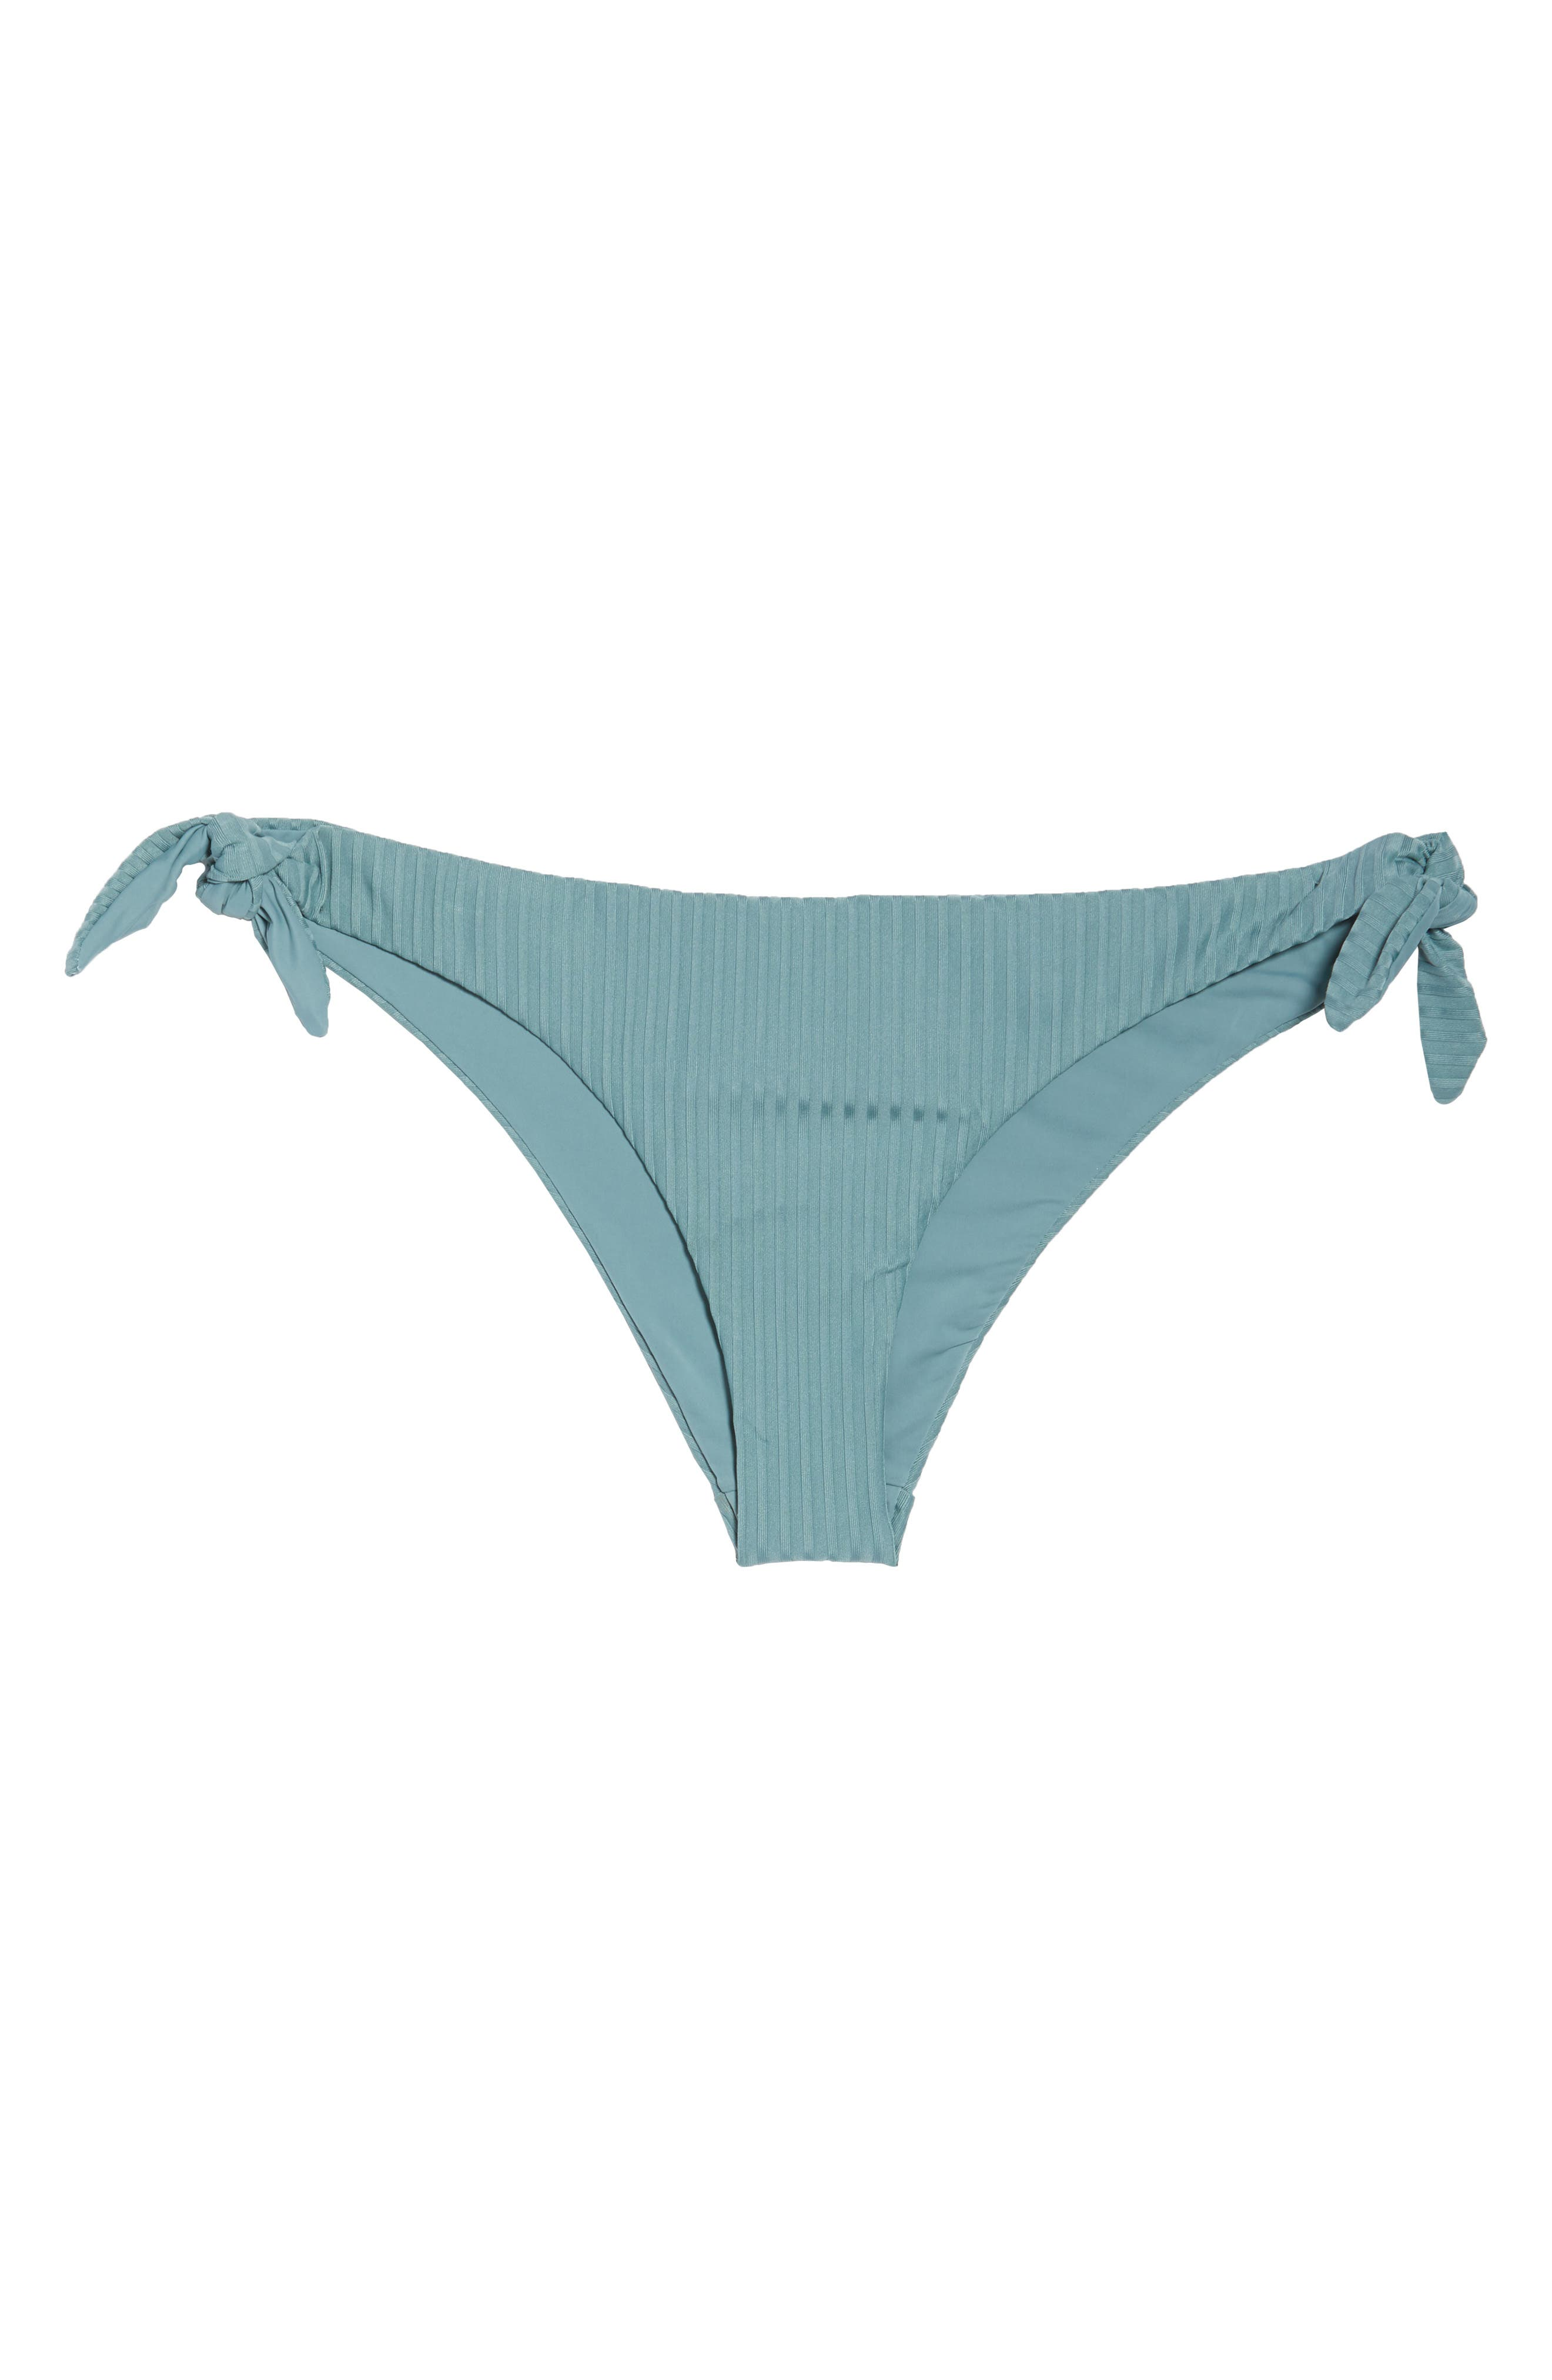 DOLCE VITA, Day Glow Swim Bottoms, Alternate thumbnail 7, color, AGAVE